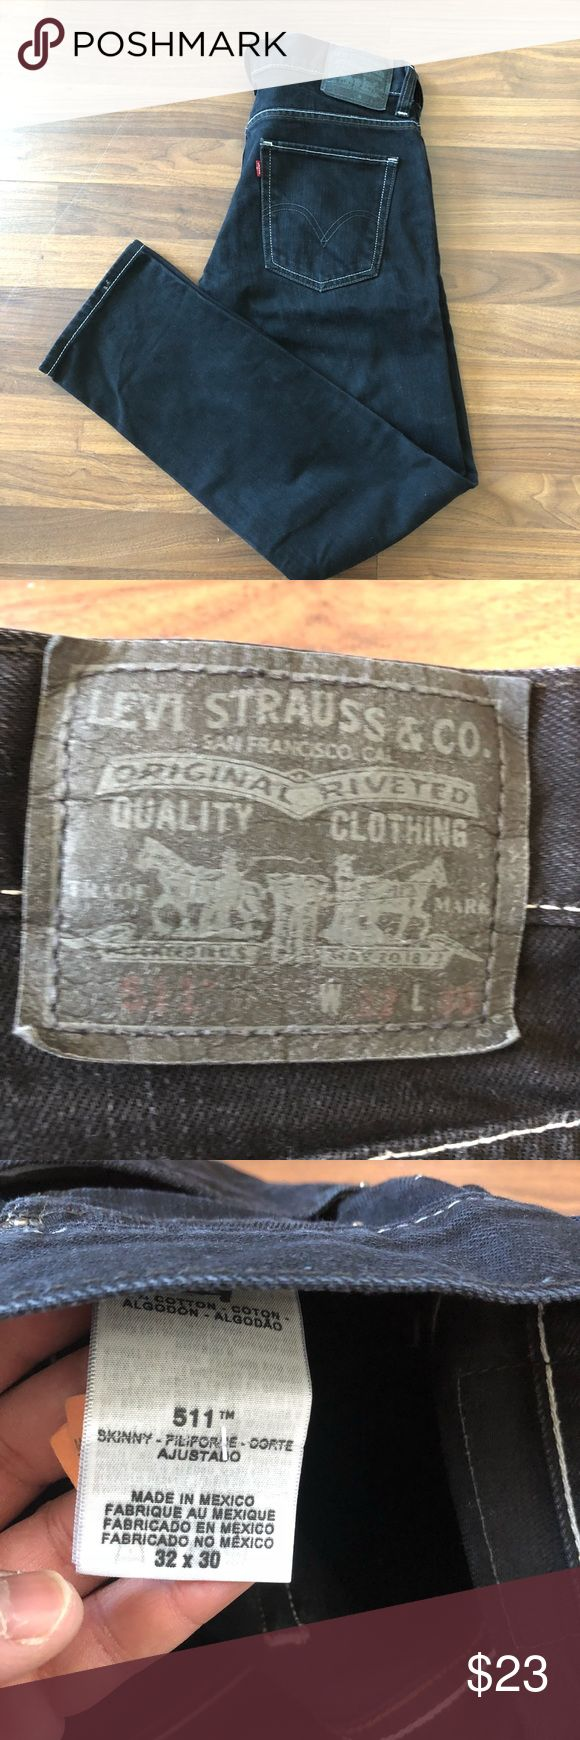 Men's size 32x30 levi 511 skinny jeans Men's size 32x30 levi 511 skinny jeans. These jeans are very nice and good condition. Black with white trimming as shown in picture Levi's Jeans Skinny